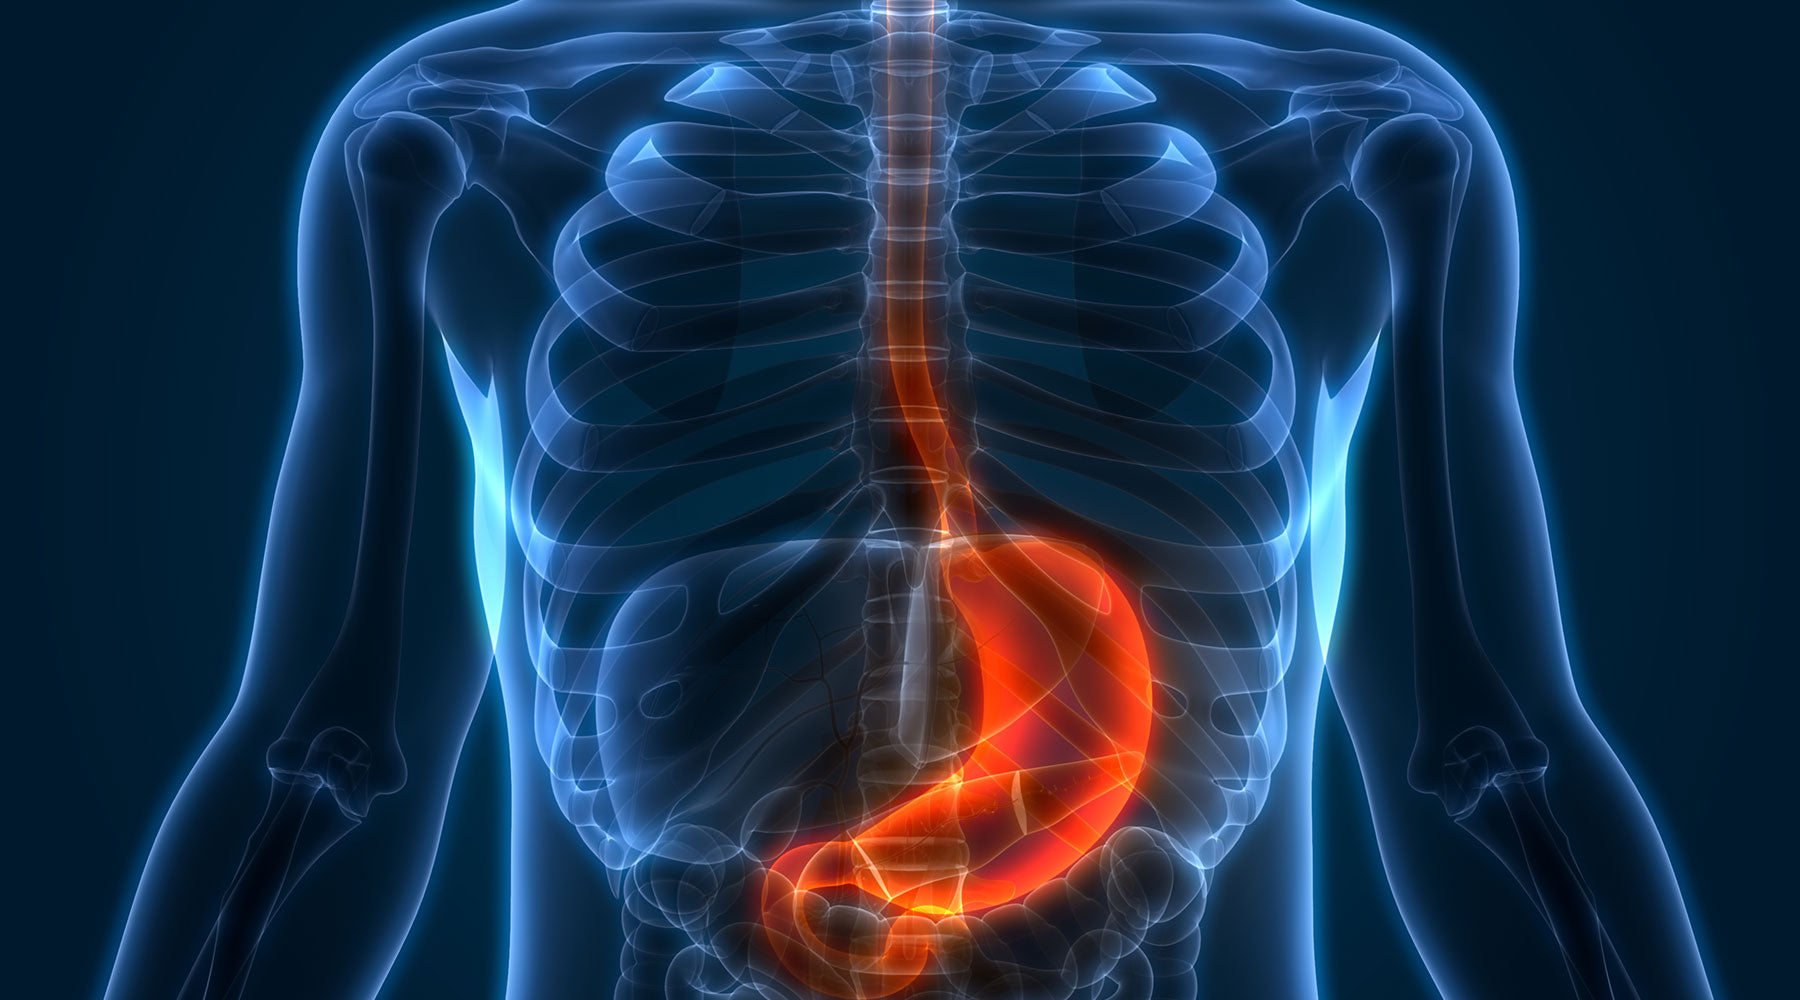 Stomach Acid Benefits That Reflux Medication Could Stop